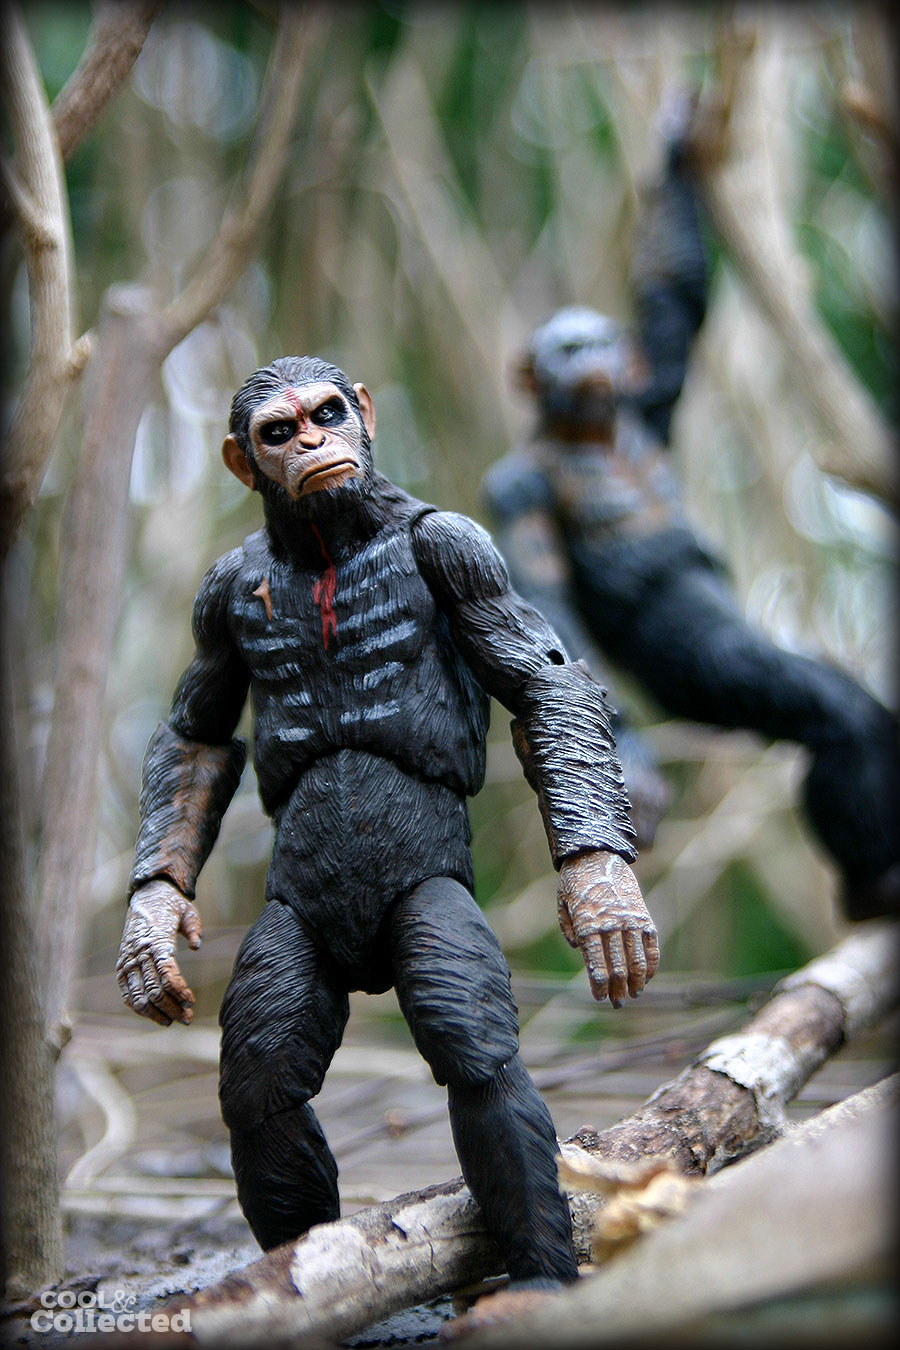 neca-planet-of-the-apes-action-figures-4